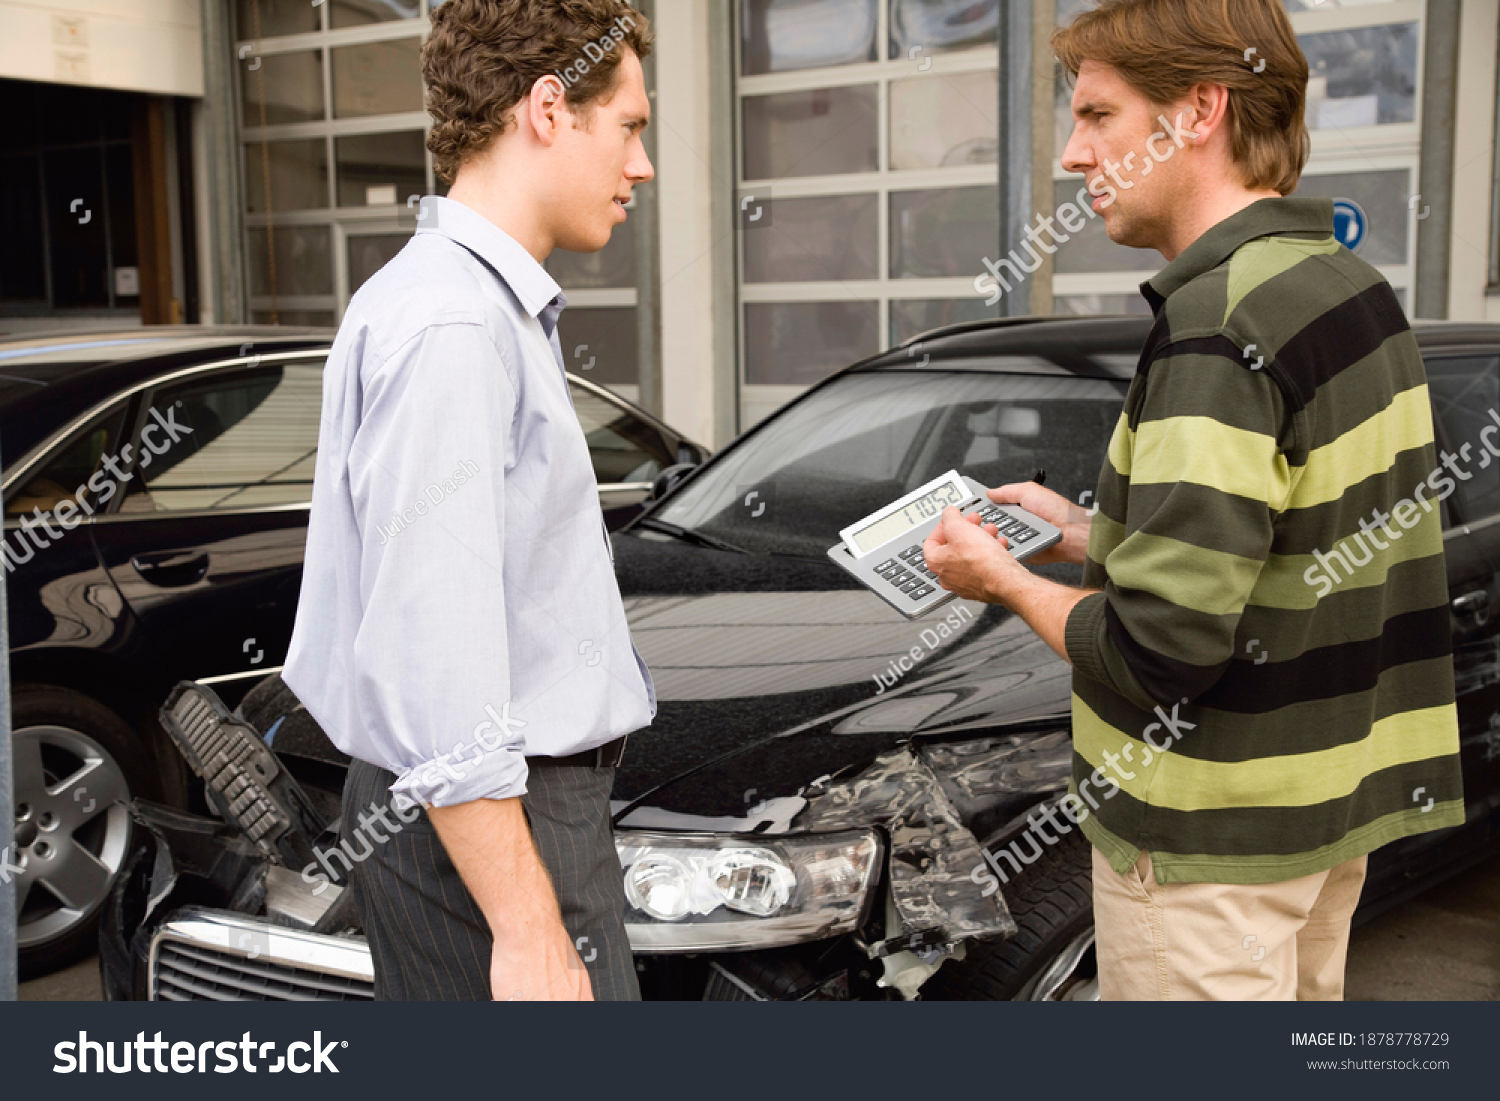 A claims adjuster showing the owner the settlement amount to be paid after assessing the damage done to a car. #1878778729